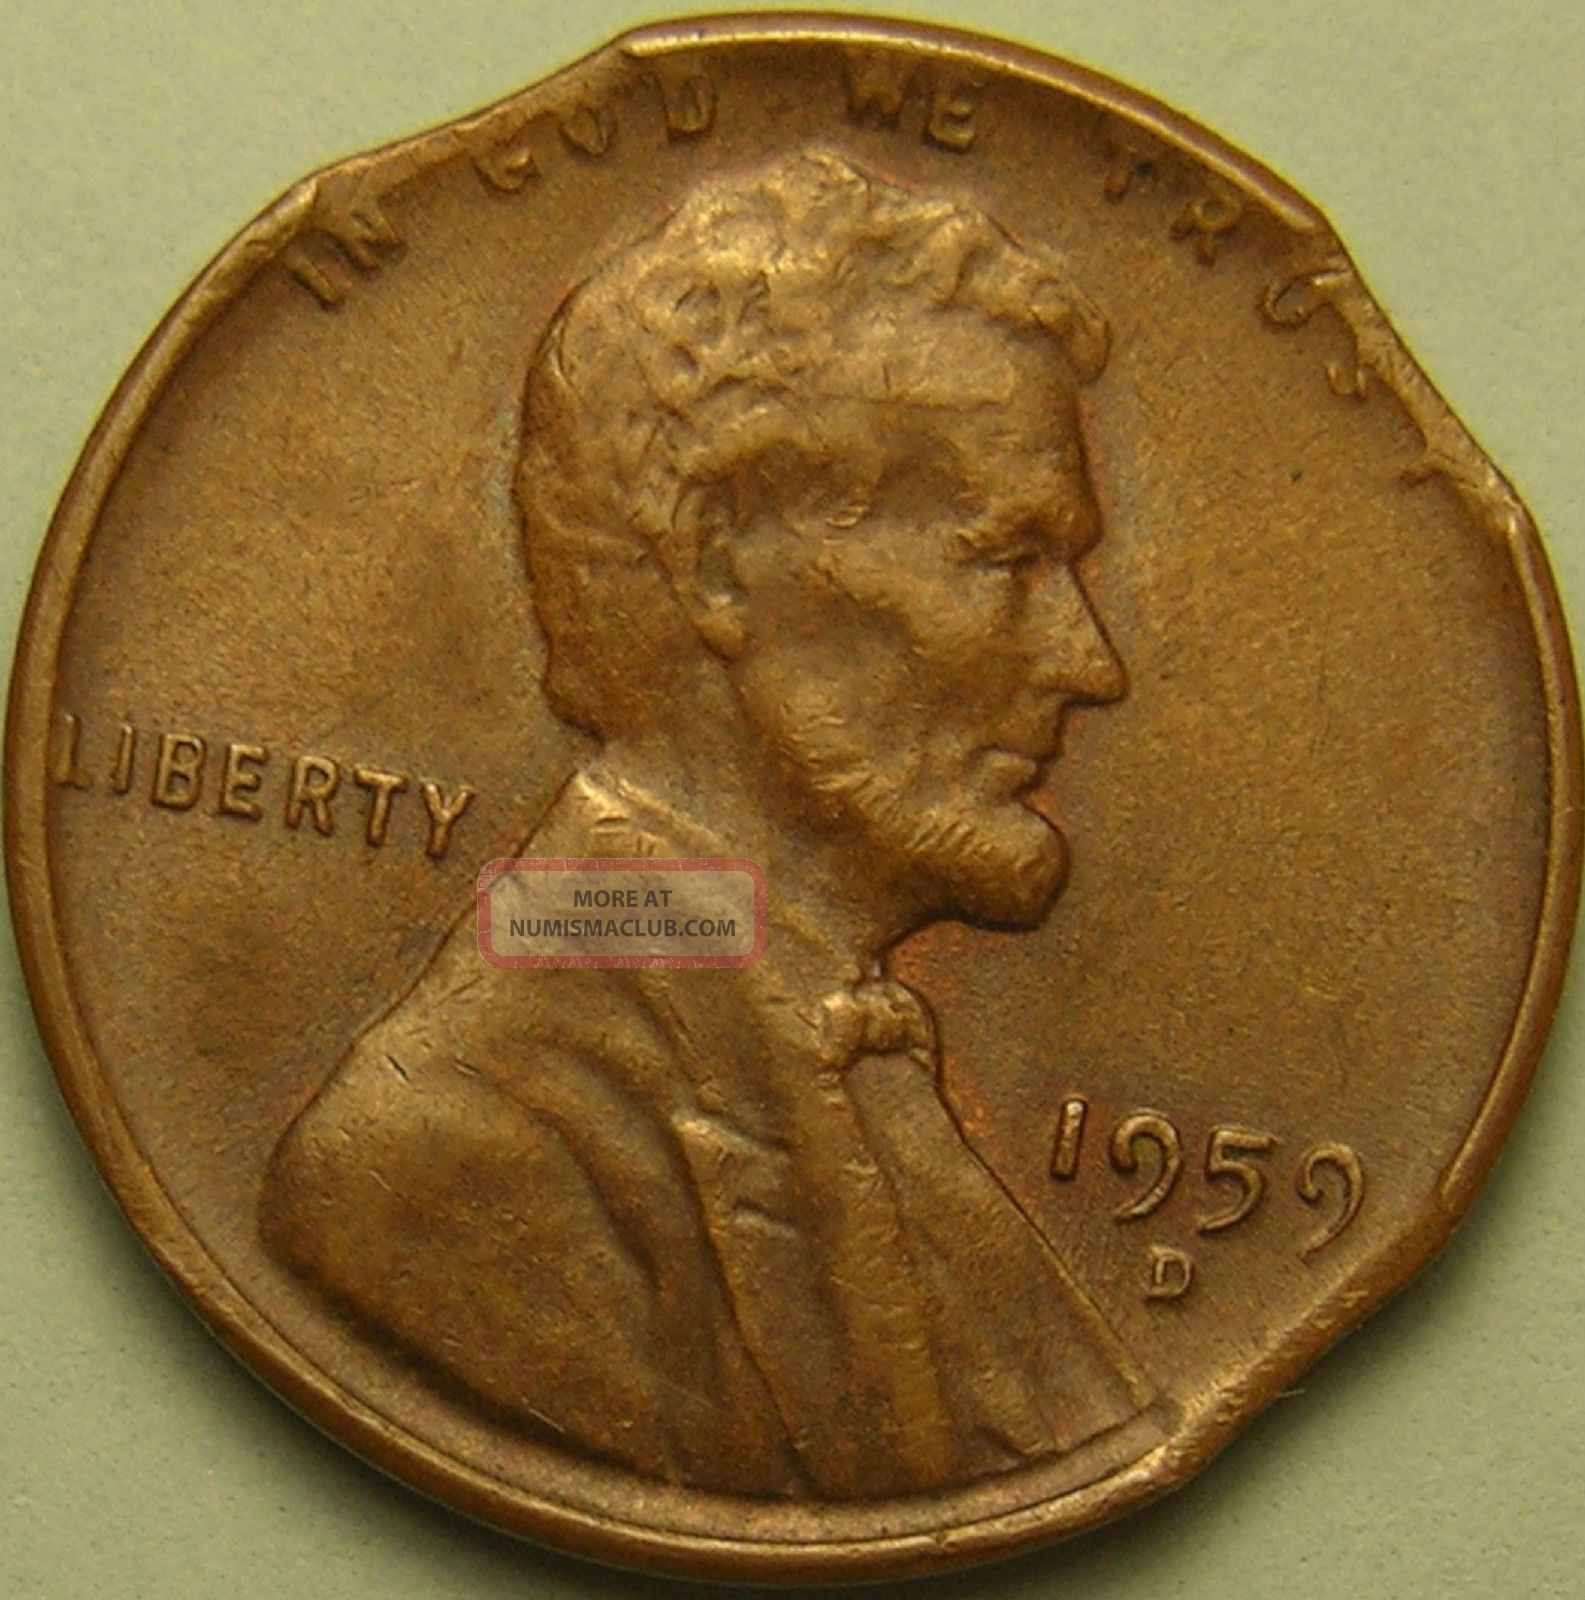 1959 D Lincoln Memorial Penny Triple Clipped Planchet